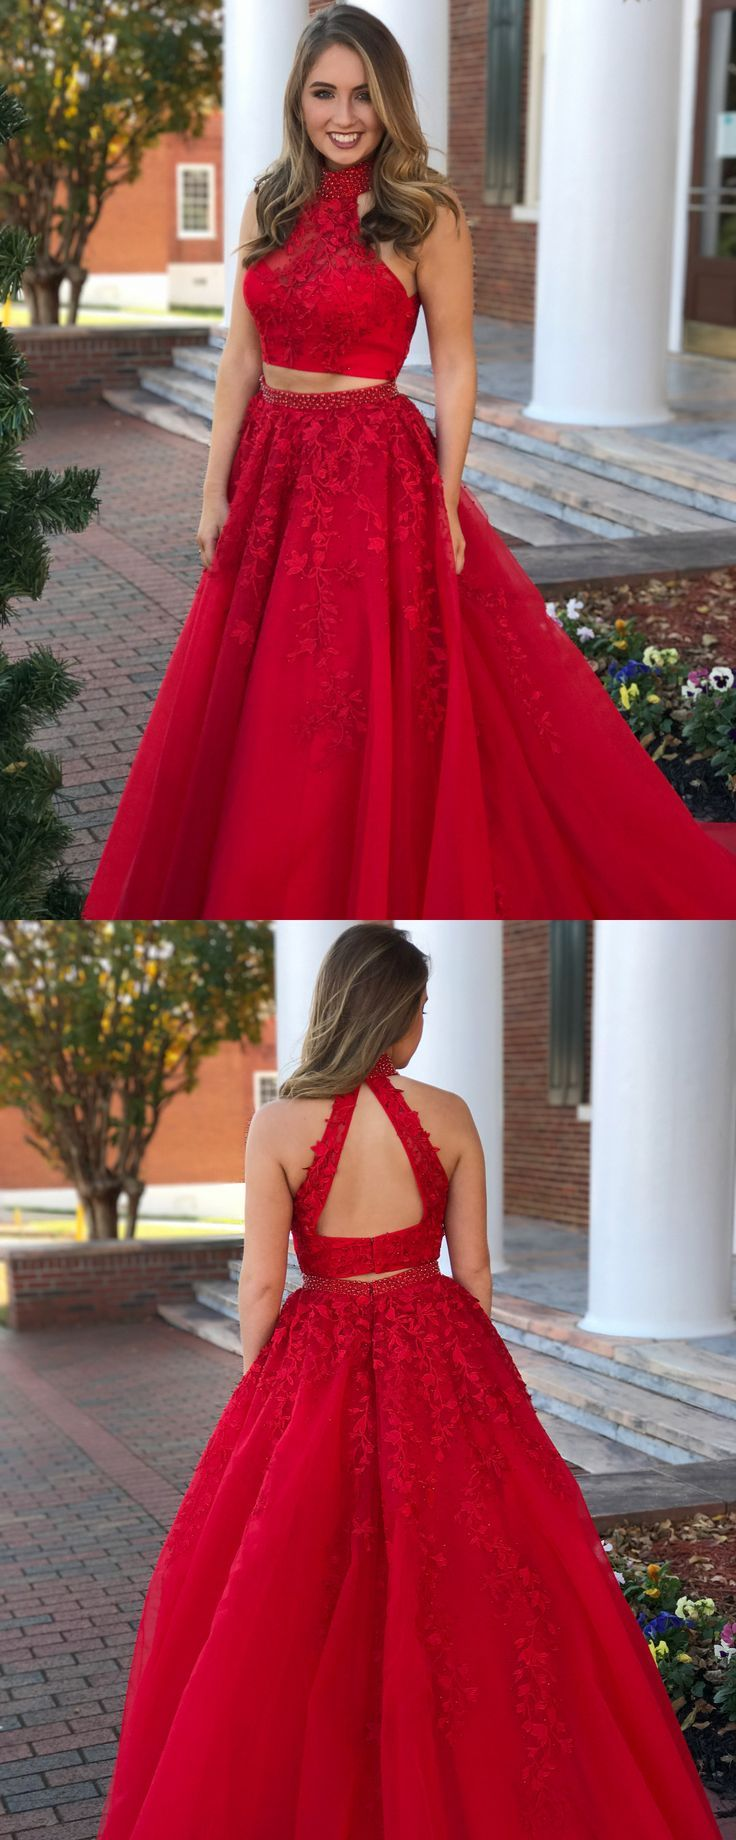 daa5884f873 Two Piece High Neck Open Back Pearled Dark Red Prom Dress with ...